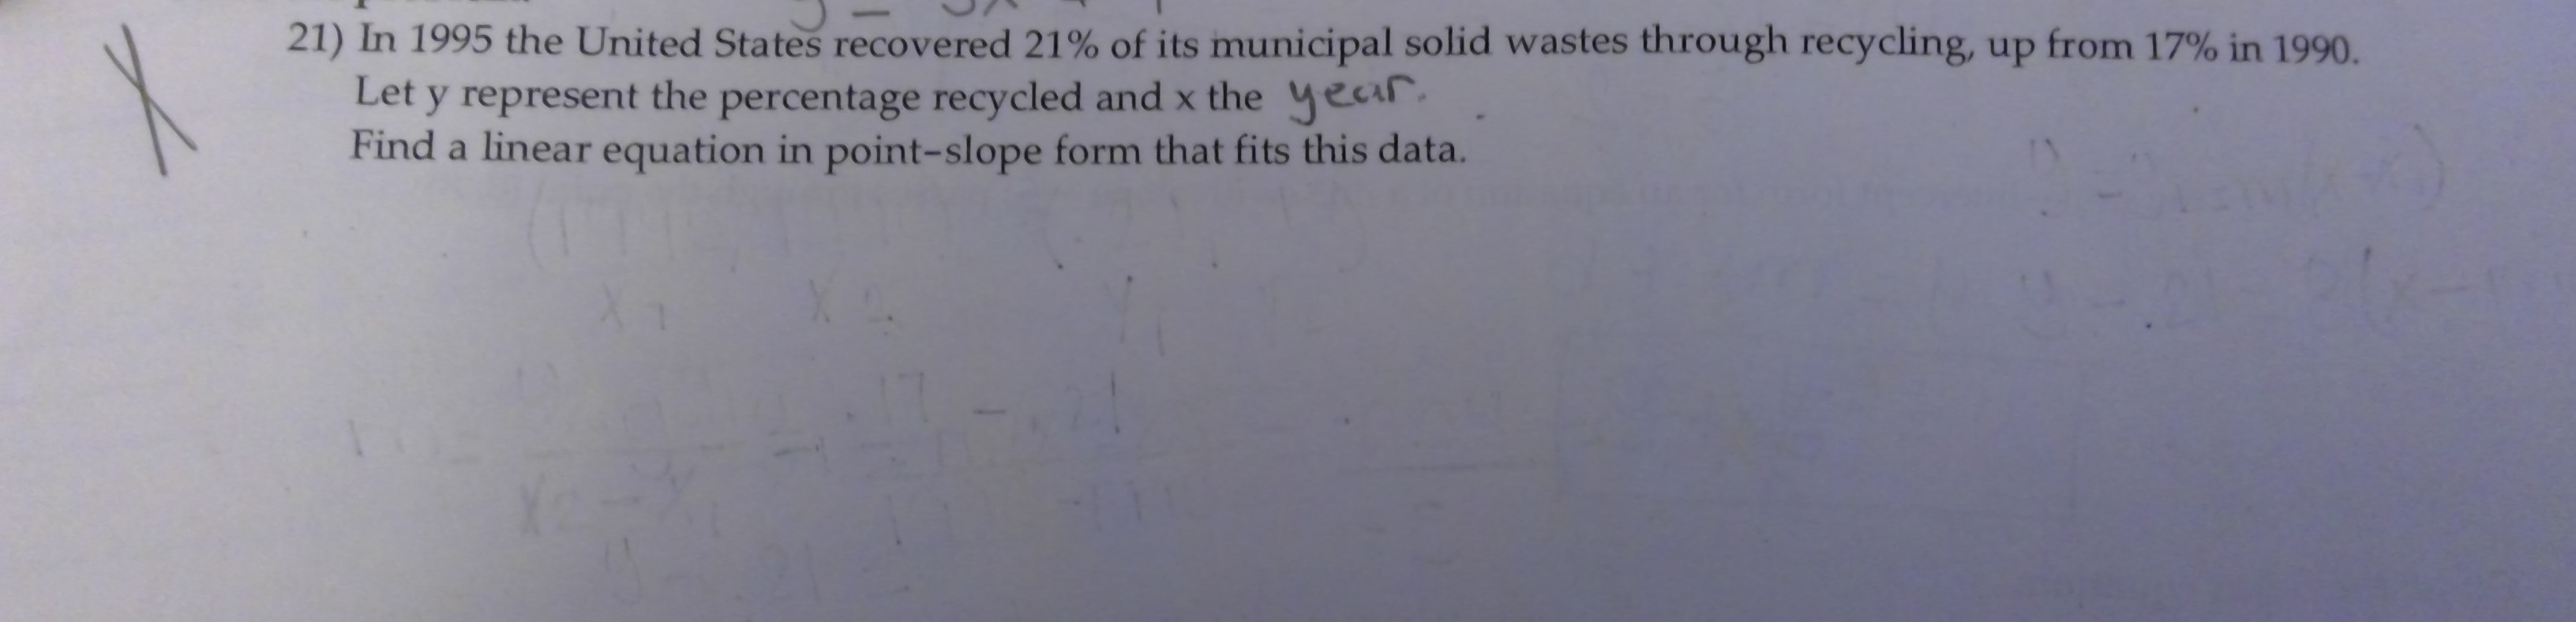 21) In 1995 the United States recovered 21% of its municipal solid wastes through recycling, up from 17% in 1990. Let y represent the percentage recycled and x the year Find a linear equation in point-slope form that fits this data.